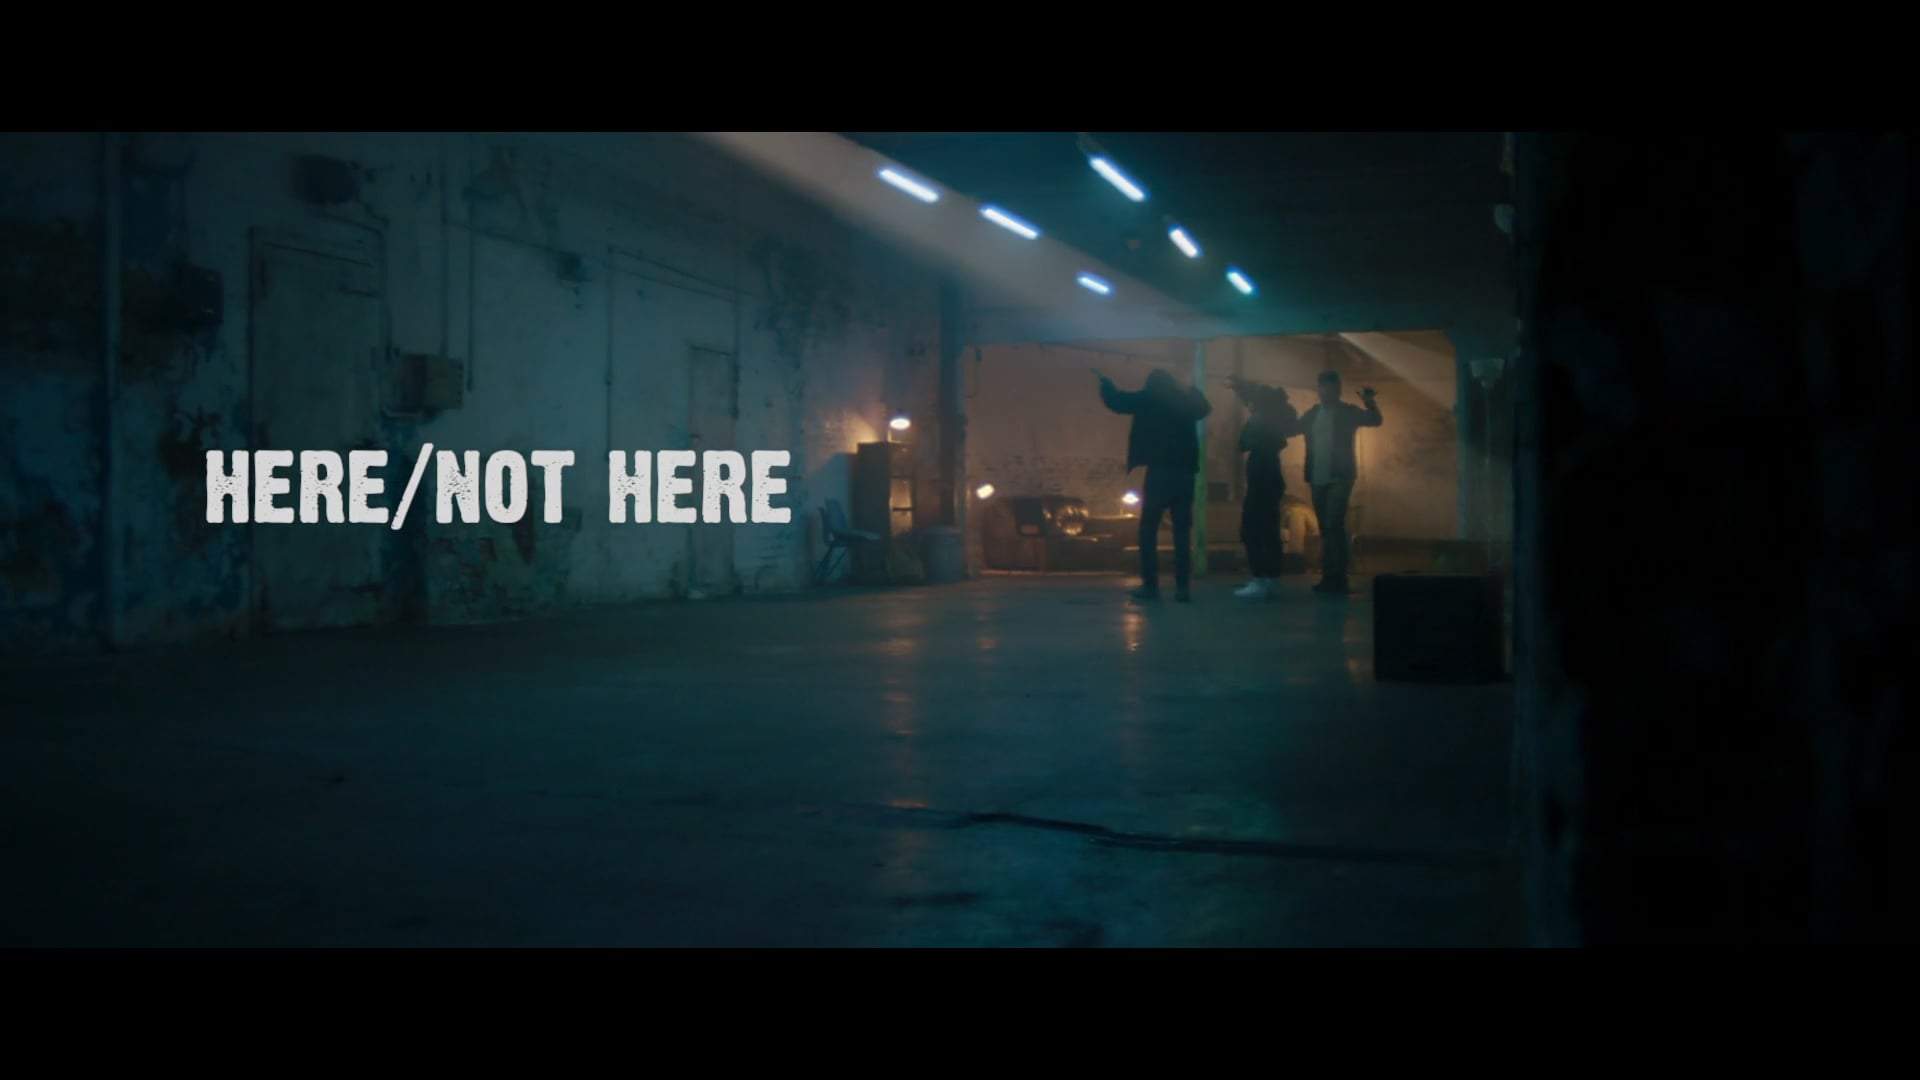 Here/Not Here